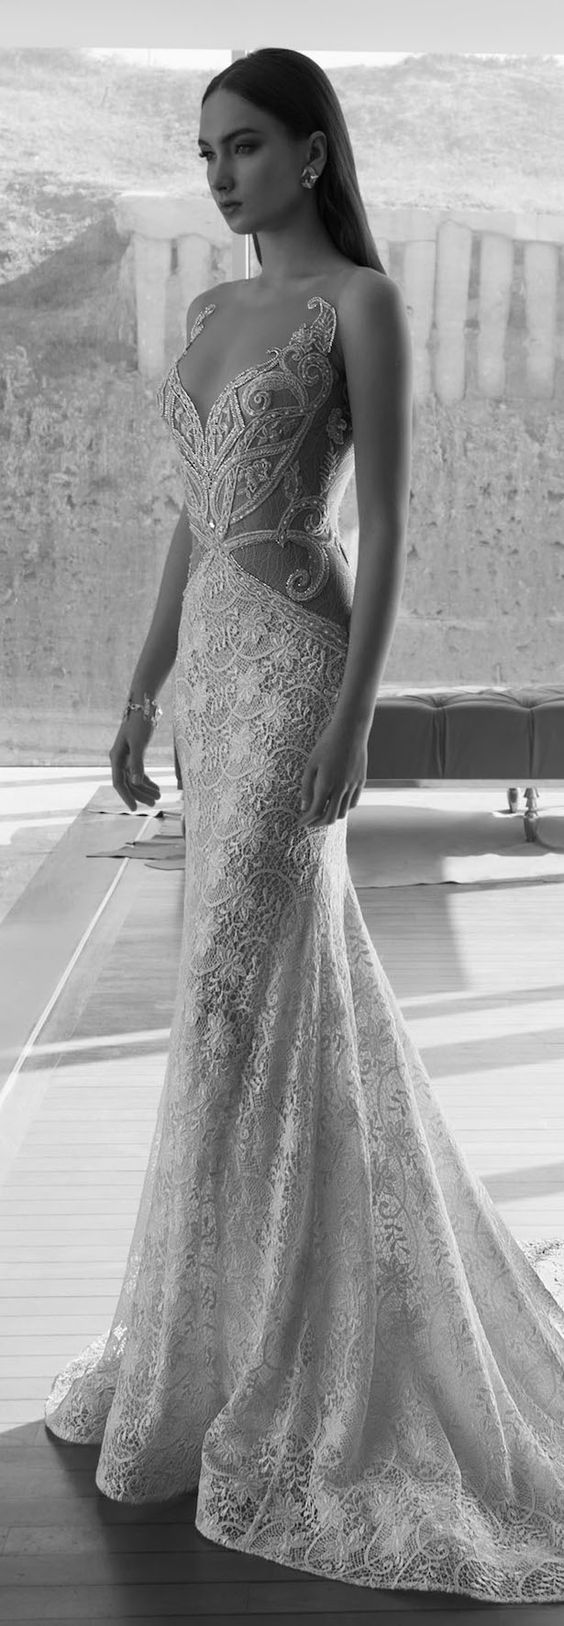 Dany Mizrachi 2016 Lace Wedding Dresses / http://www.deerpearlflowers.com/lace-wedding-dresses-and-gowns/2/